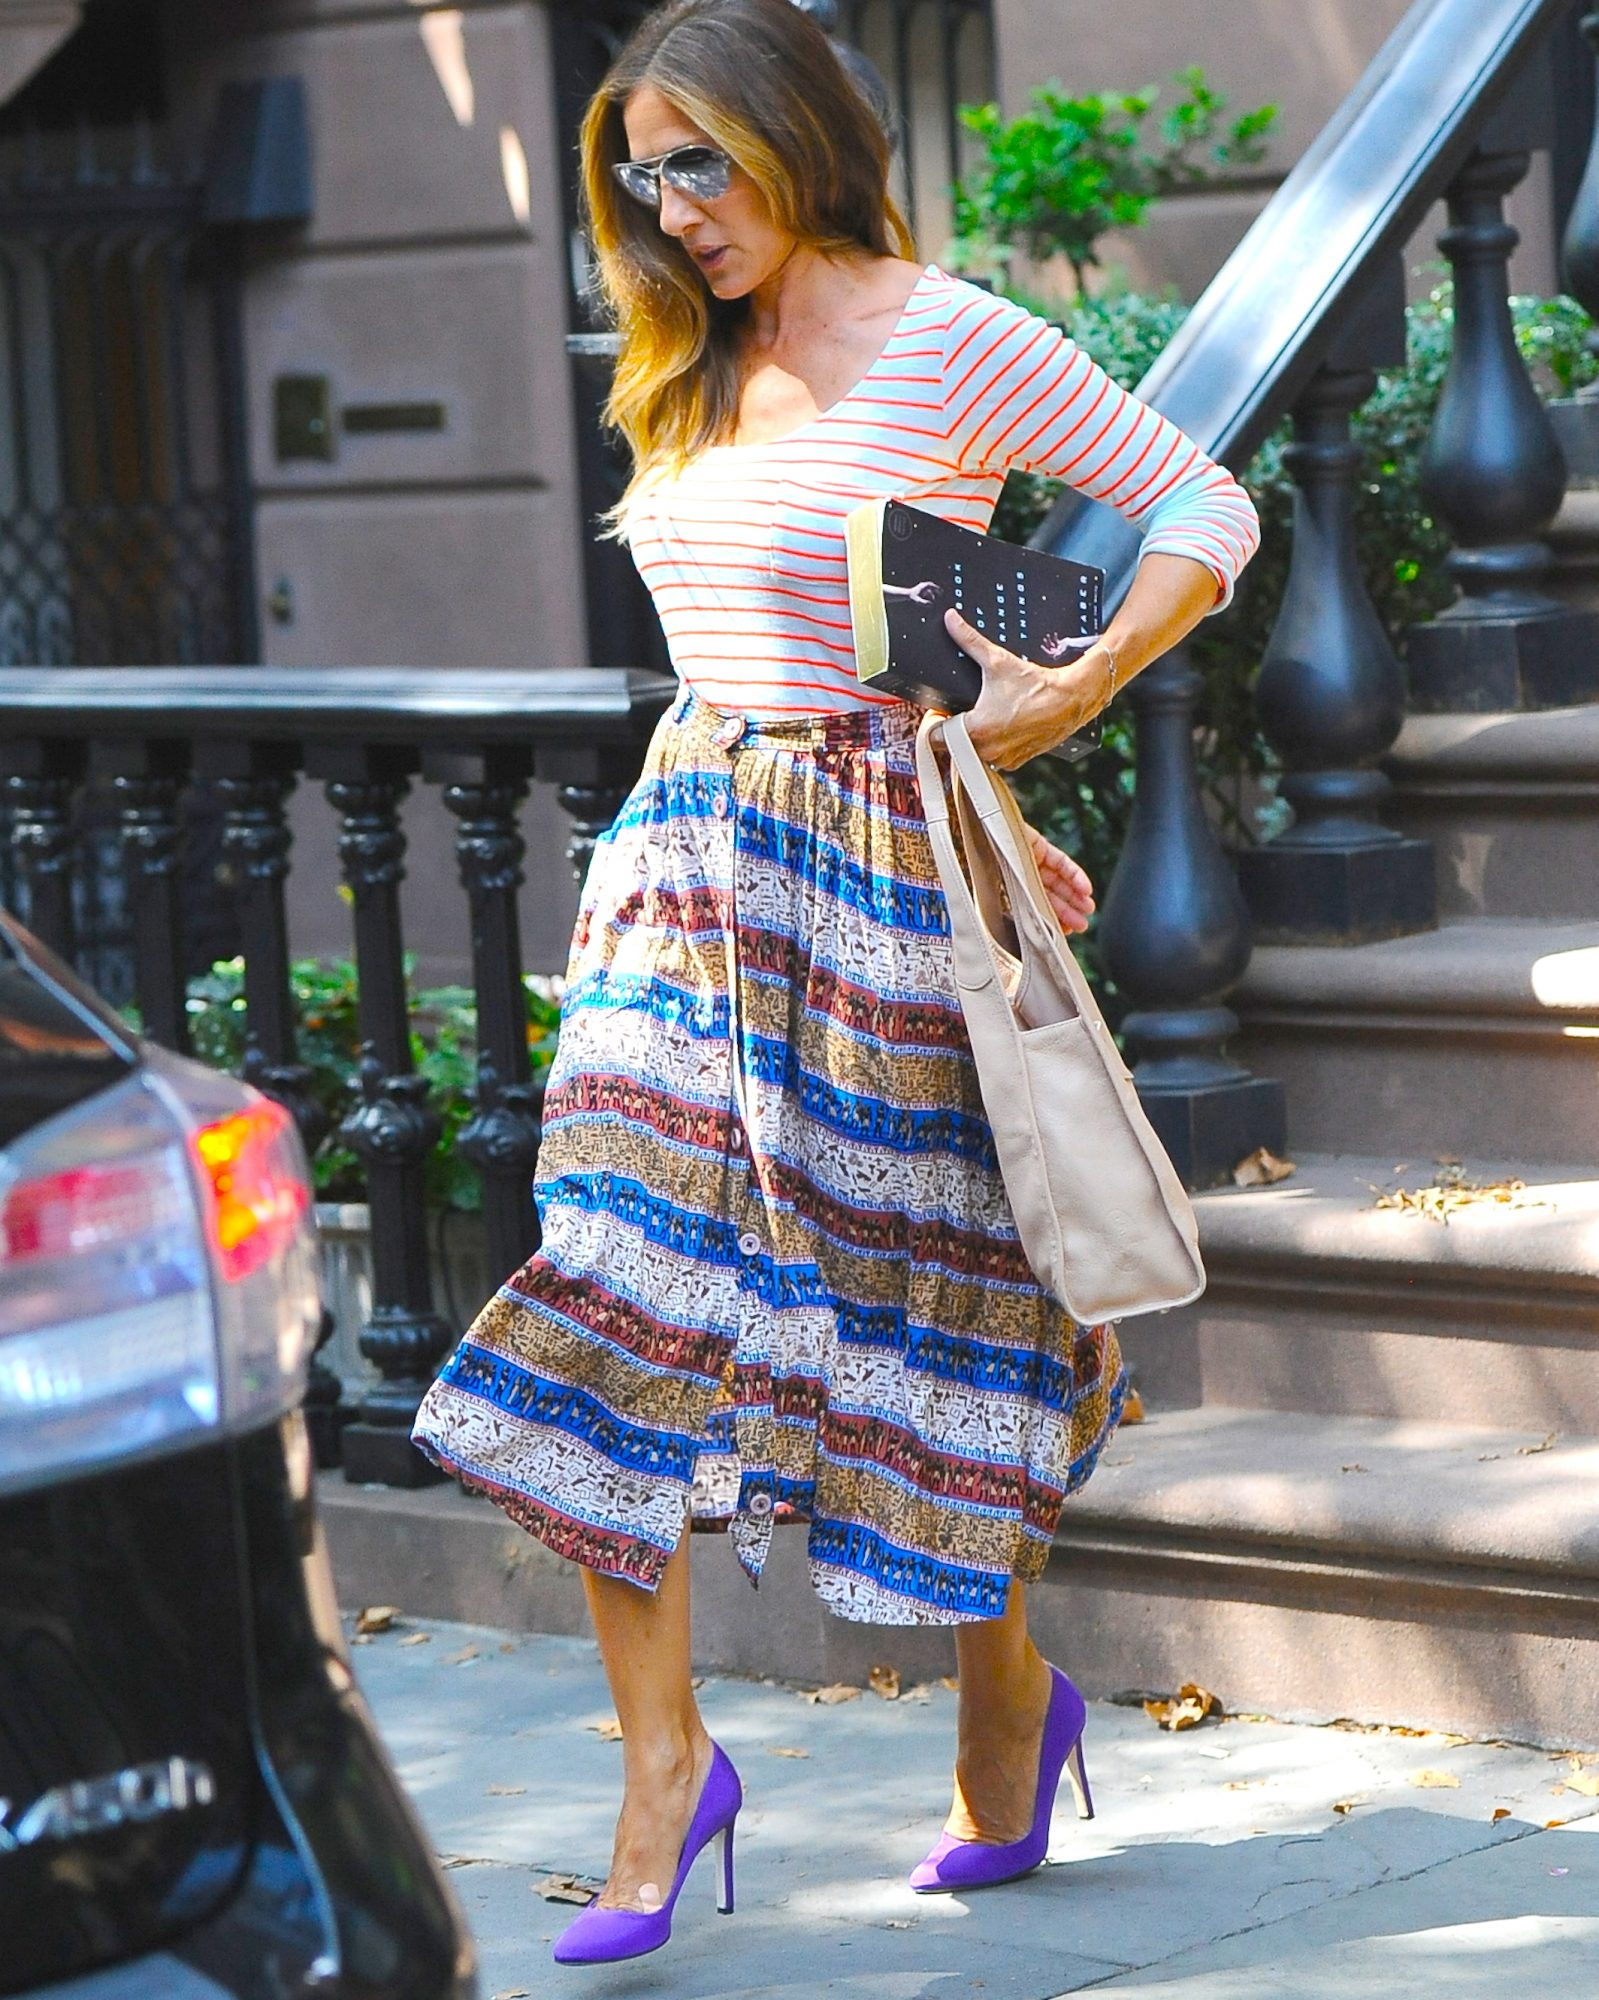 sjp-shoe-roundup-celeb-sighting-nyc-0515.jpg